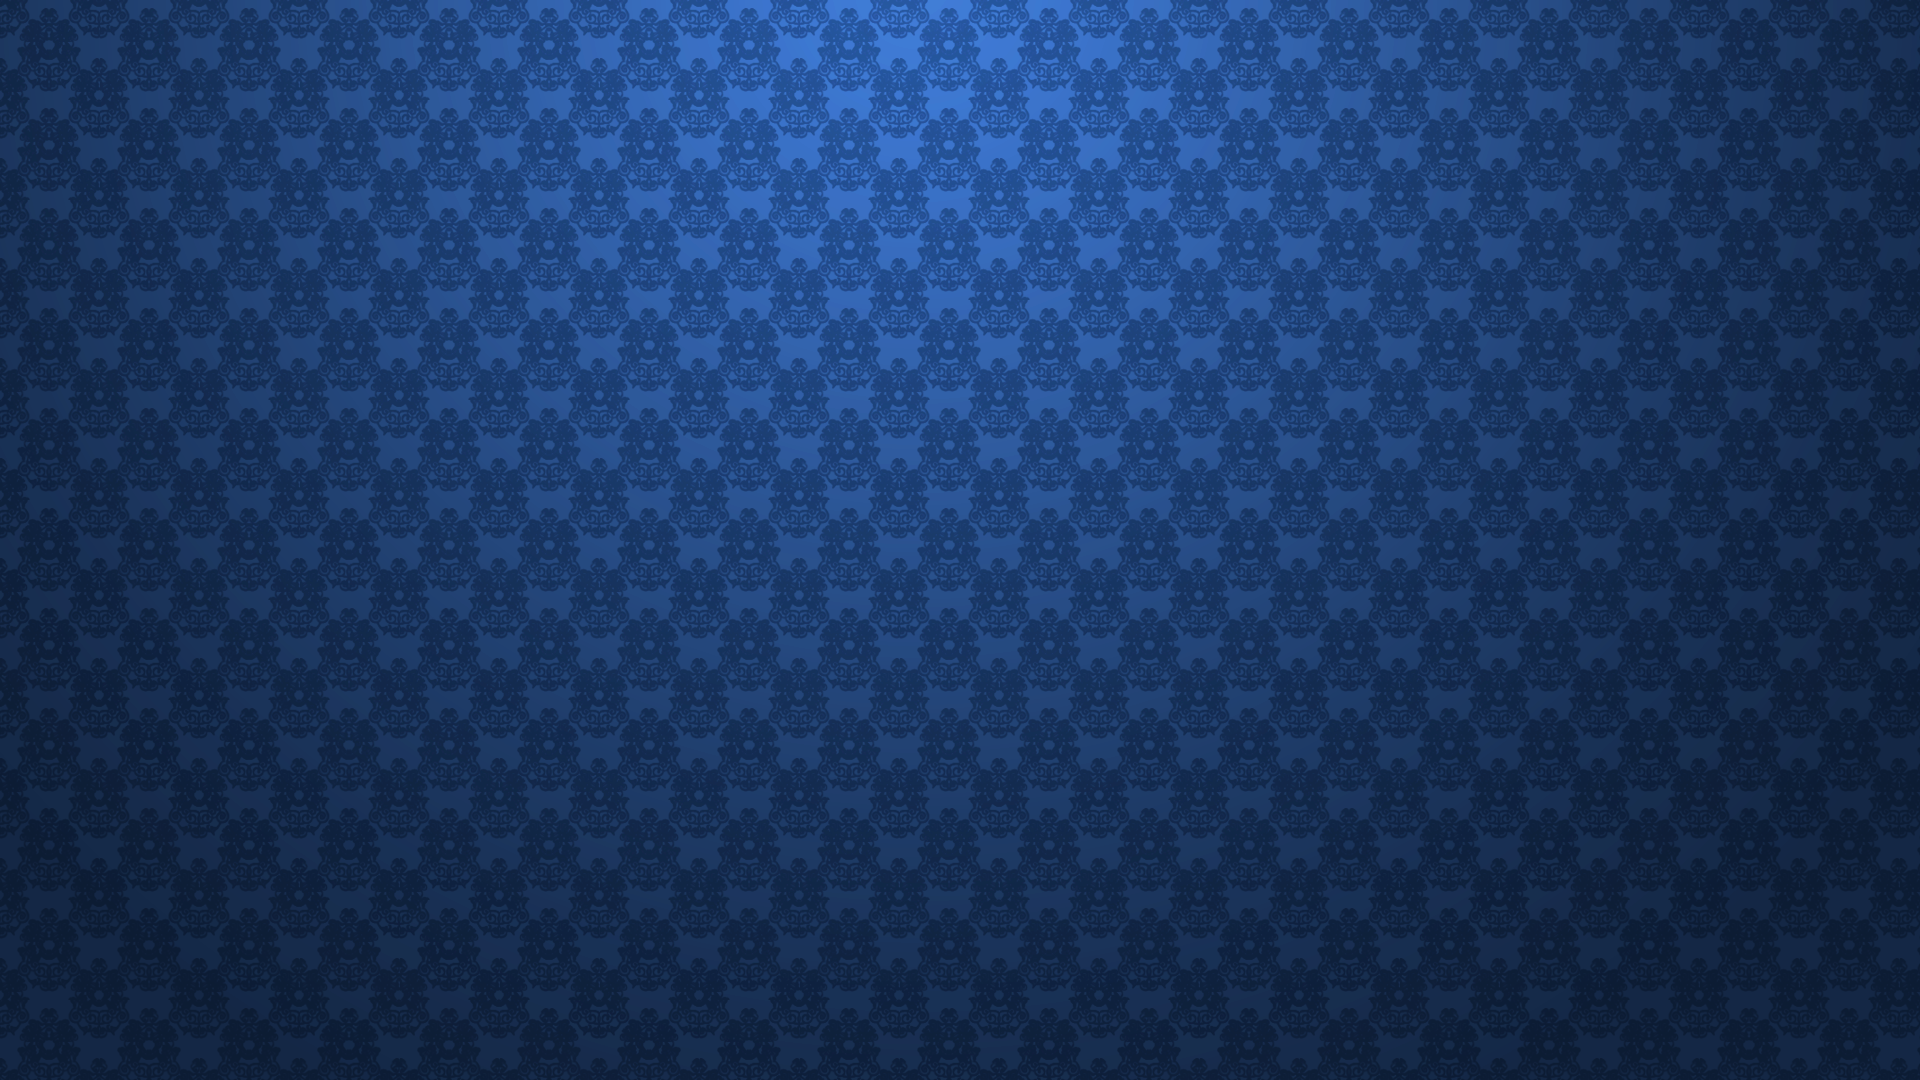 Tardis pattern wallpaper Wallpaper Wide HD 1920x1080